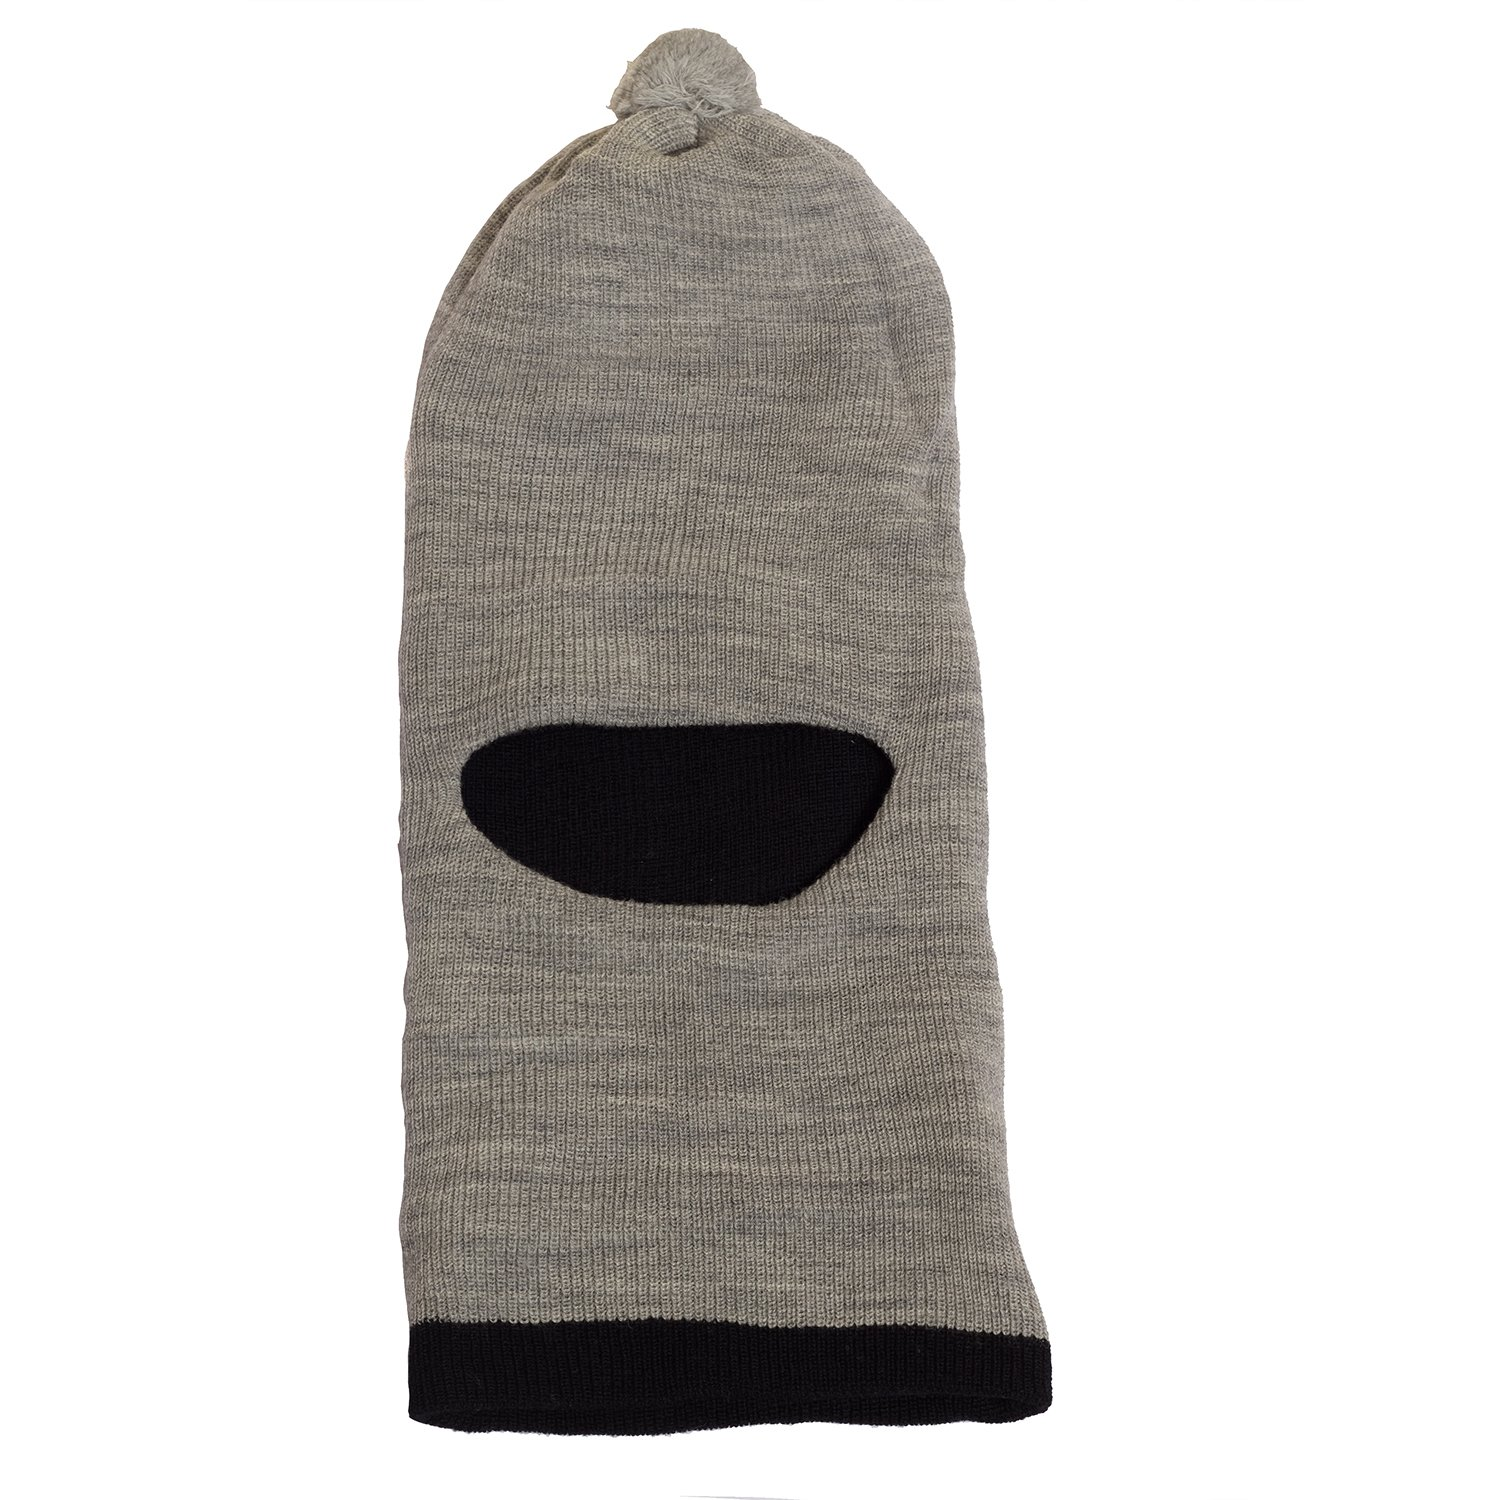 d07d08e36b4 Hiver unisex wool monkey cap ash clothing accessories jpg 1500x1500 Monkey  cap